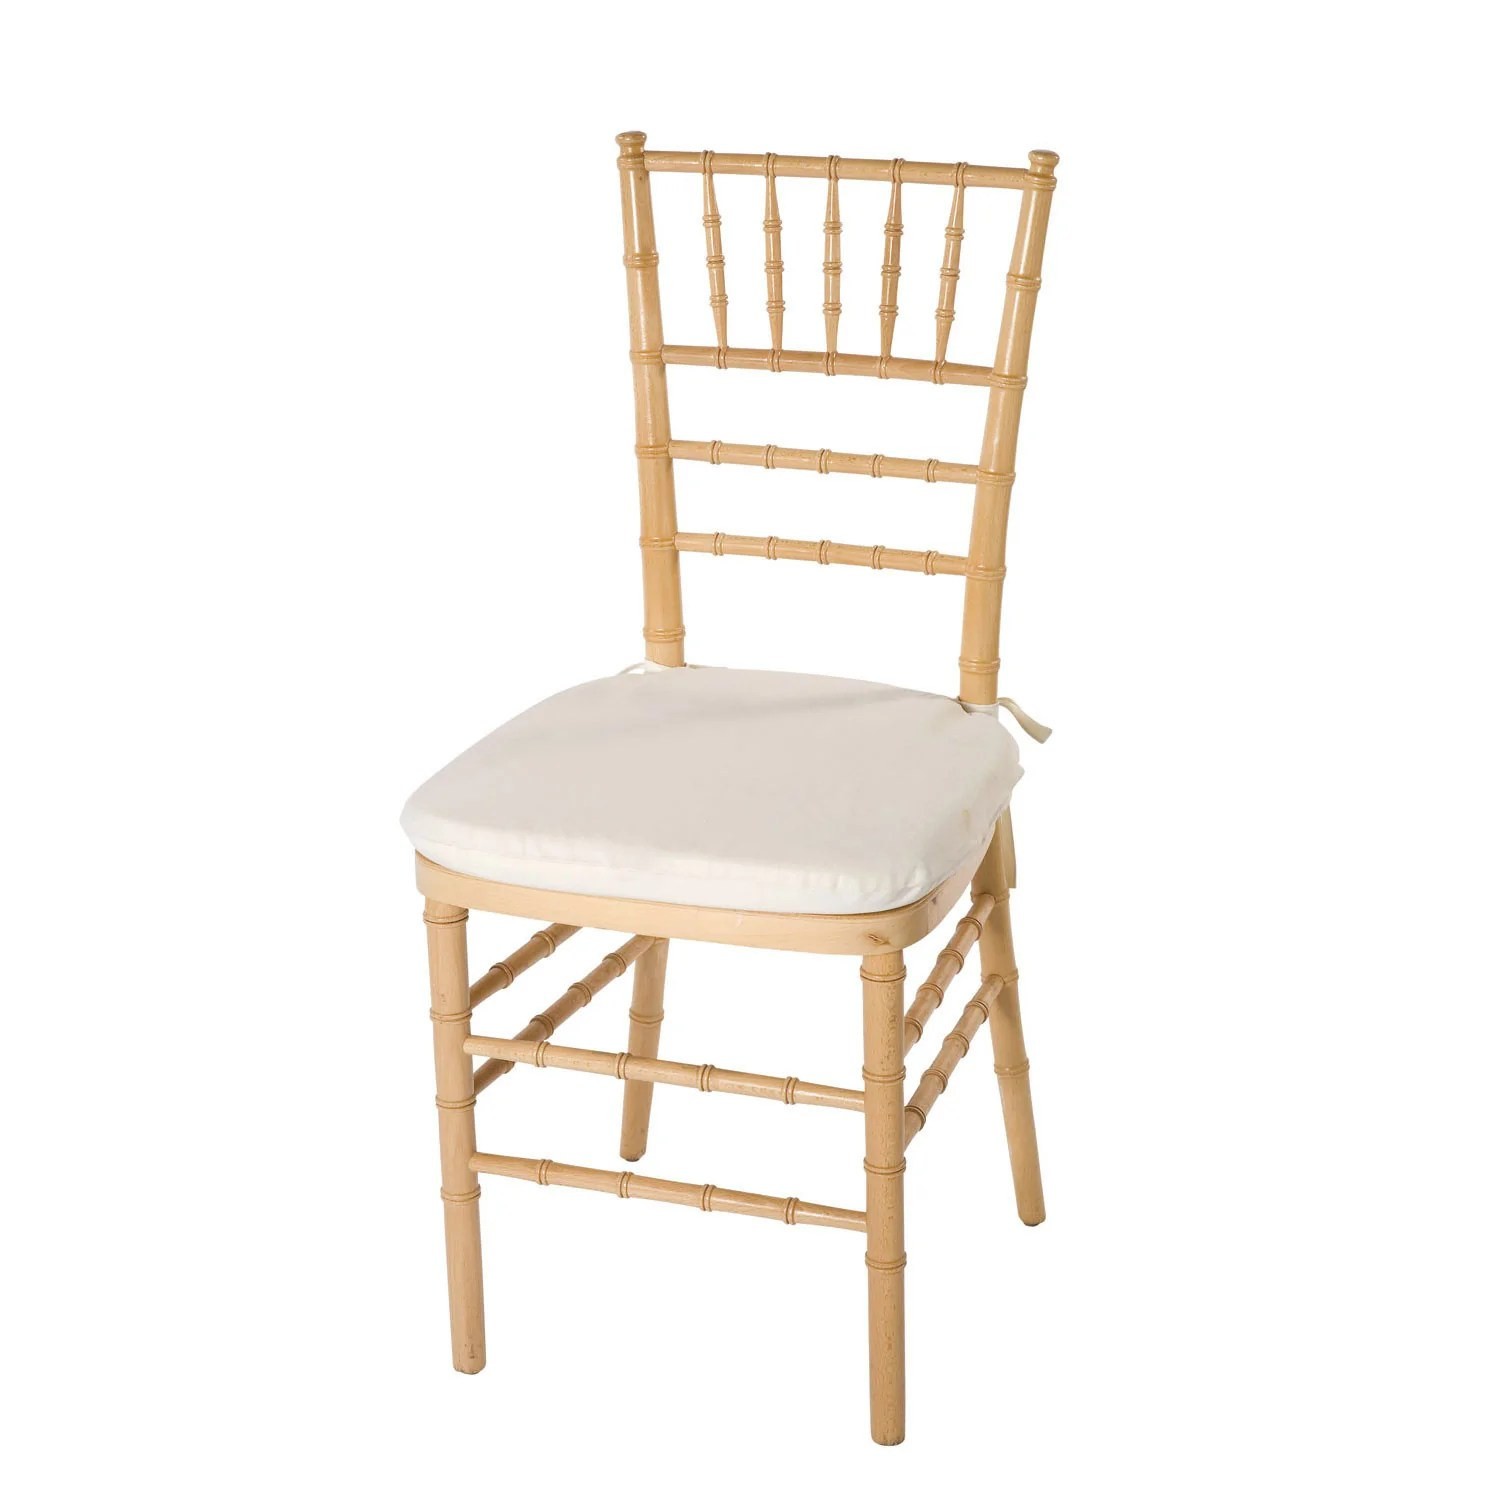 natural chiavari chairs cushions for kitchen chair multiple colors international event products load image into gallery viewer